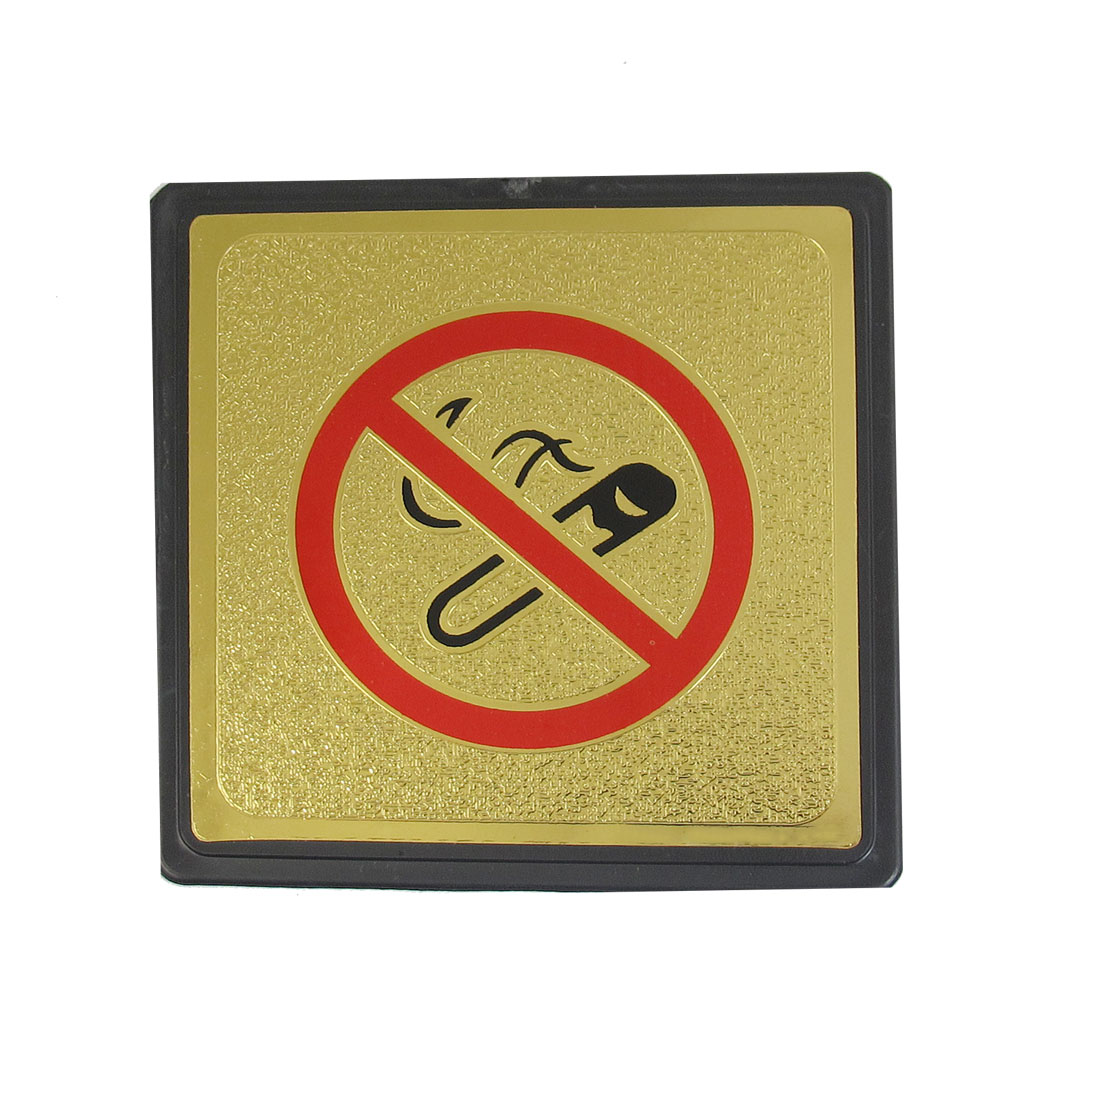 Metal Coated Plastic Square Red No Smoking Sign Board w Adhesive Tape